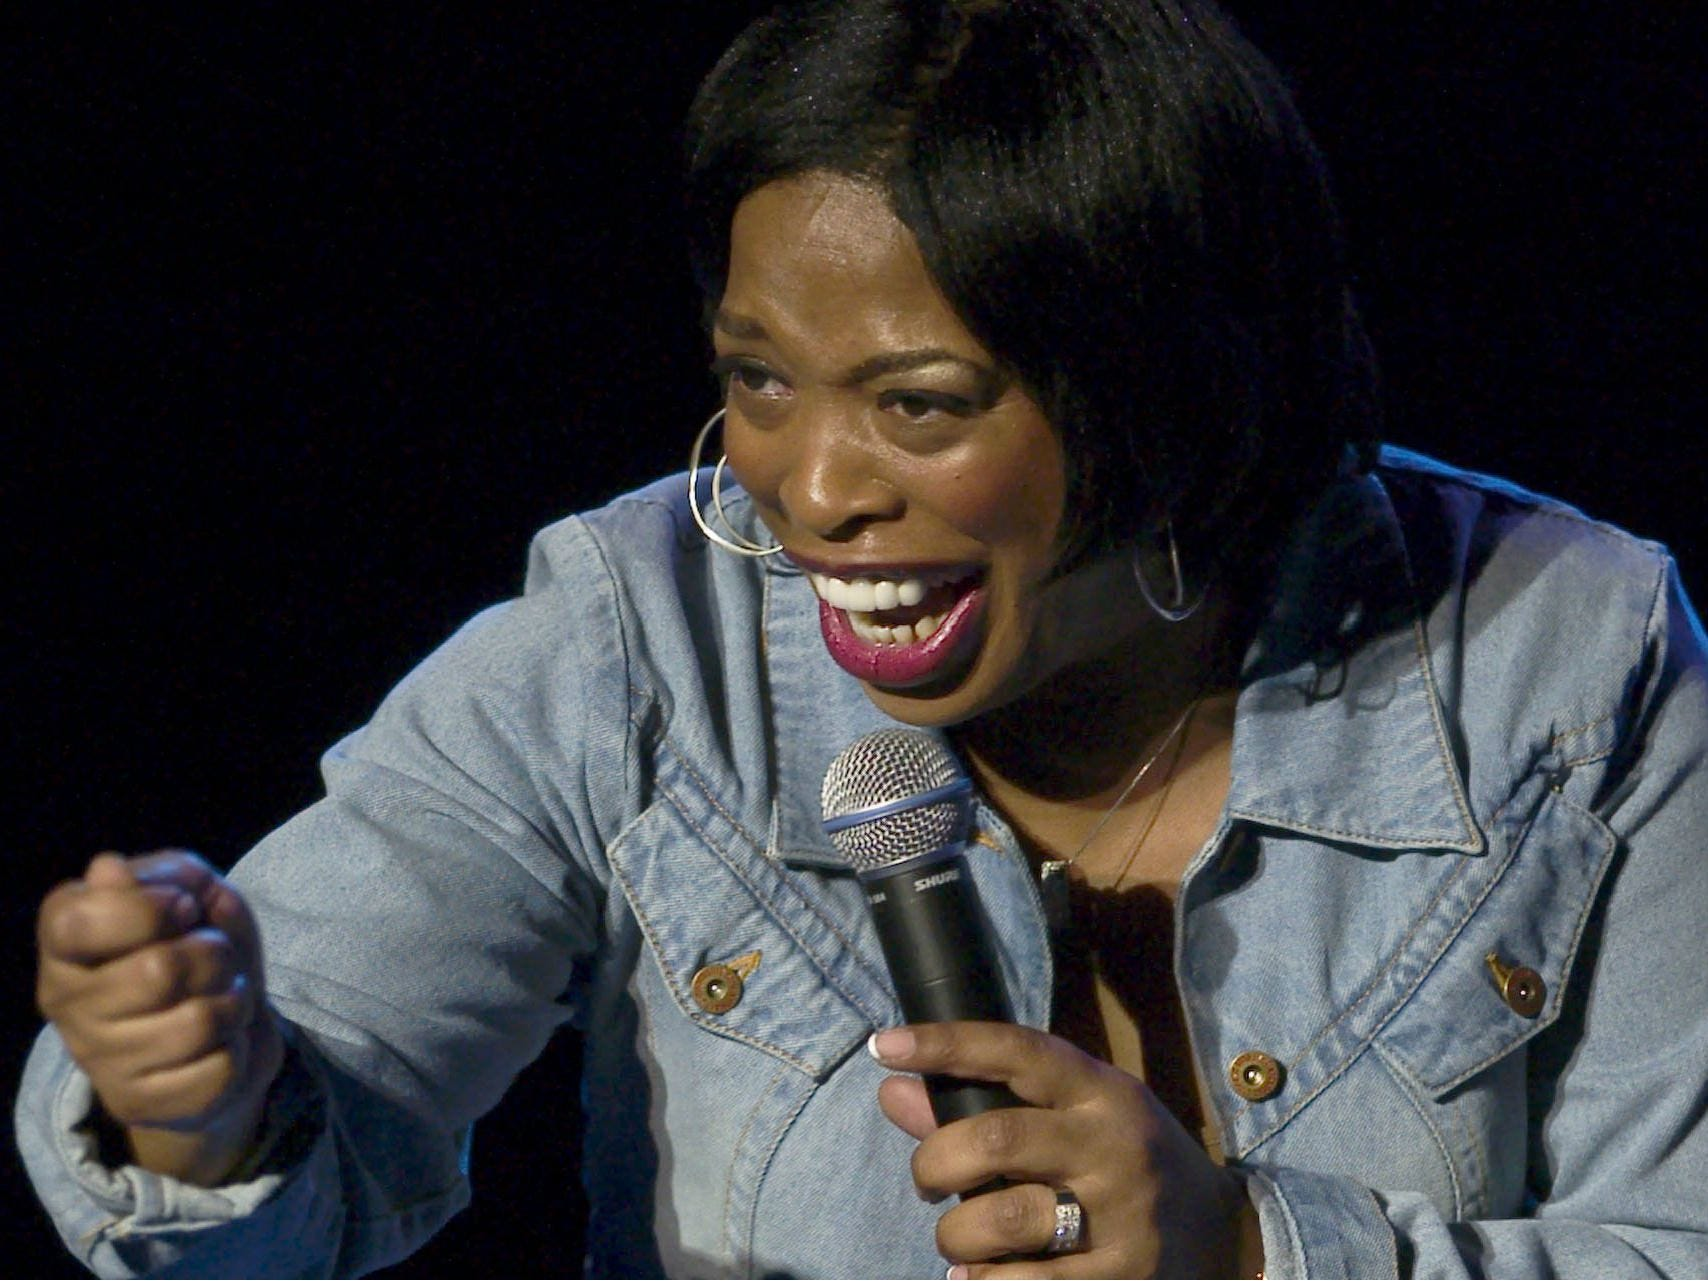 Comedian Adele Givens performs at Helium Comedy Club in Indianapolis on Aug. 23-25, 2019.